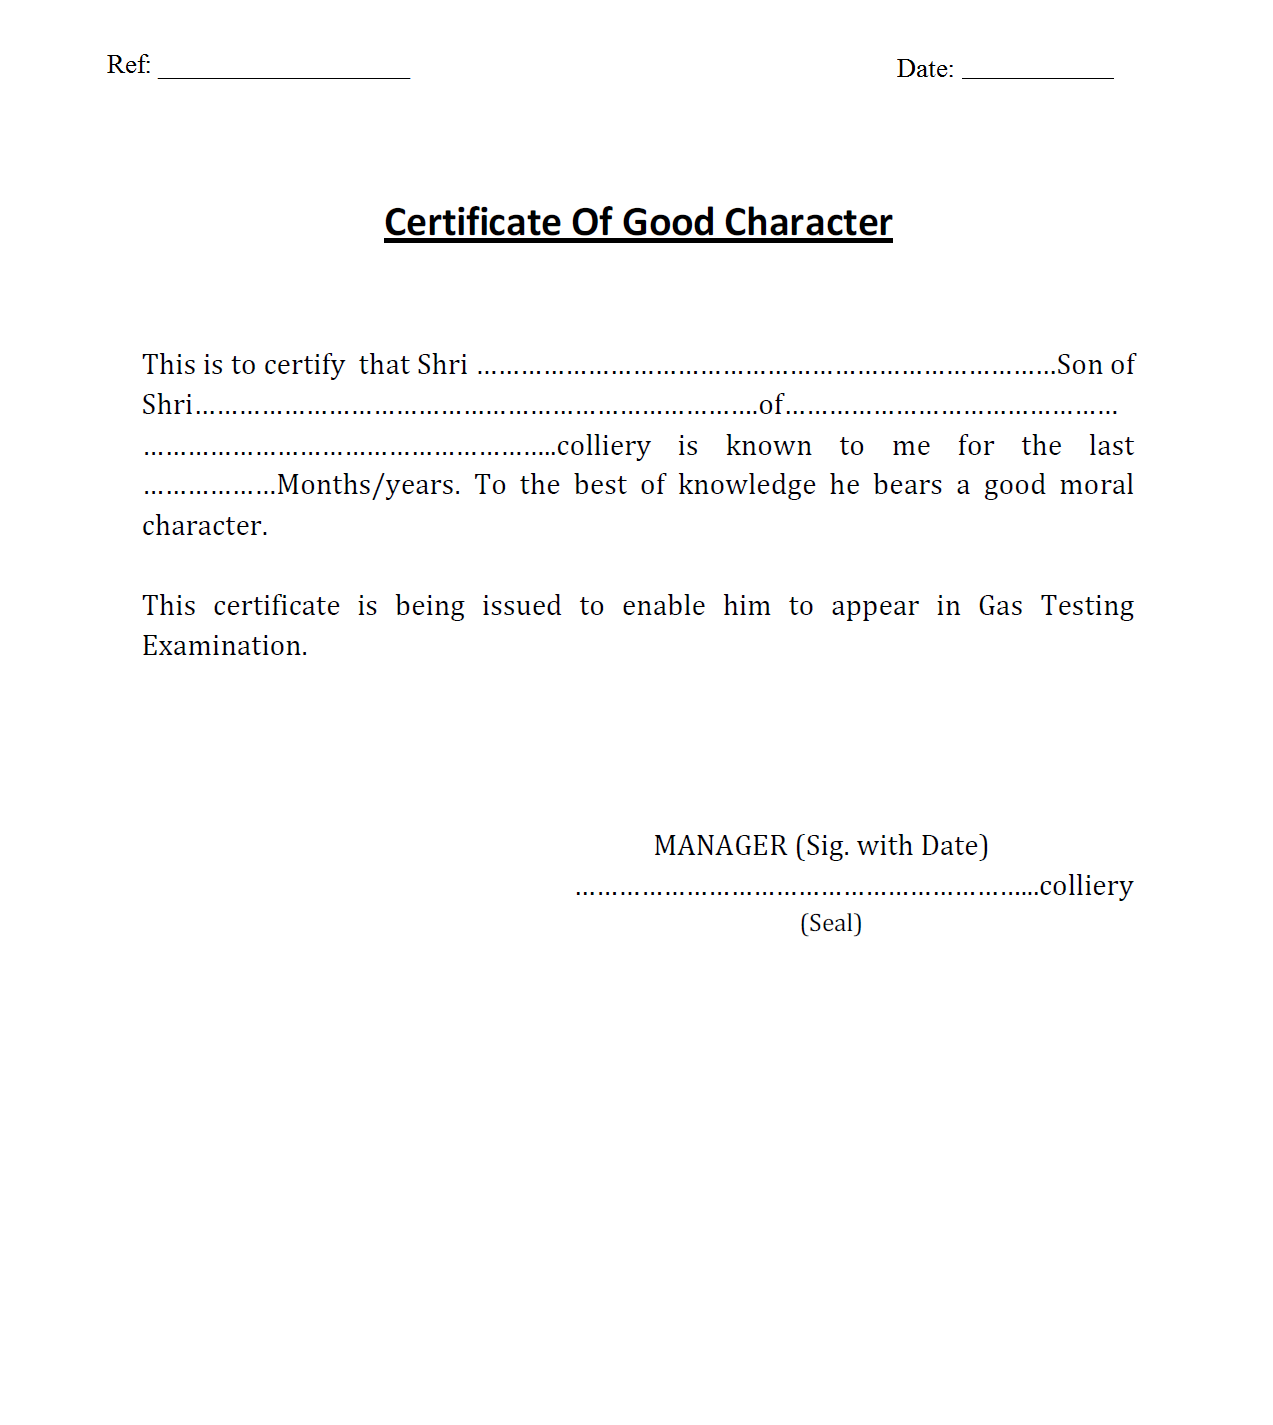 Character Certificate For Gas Testing Exam